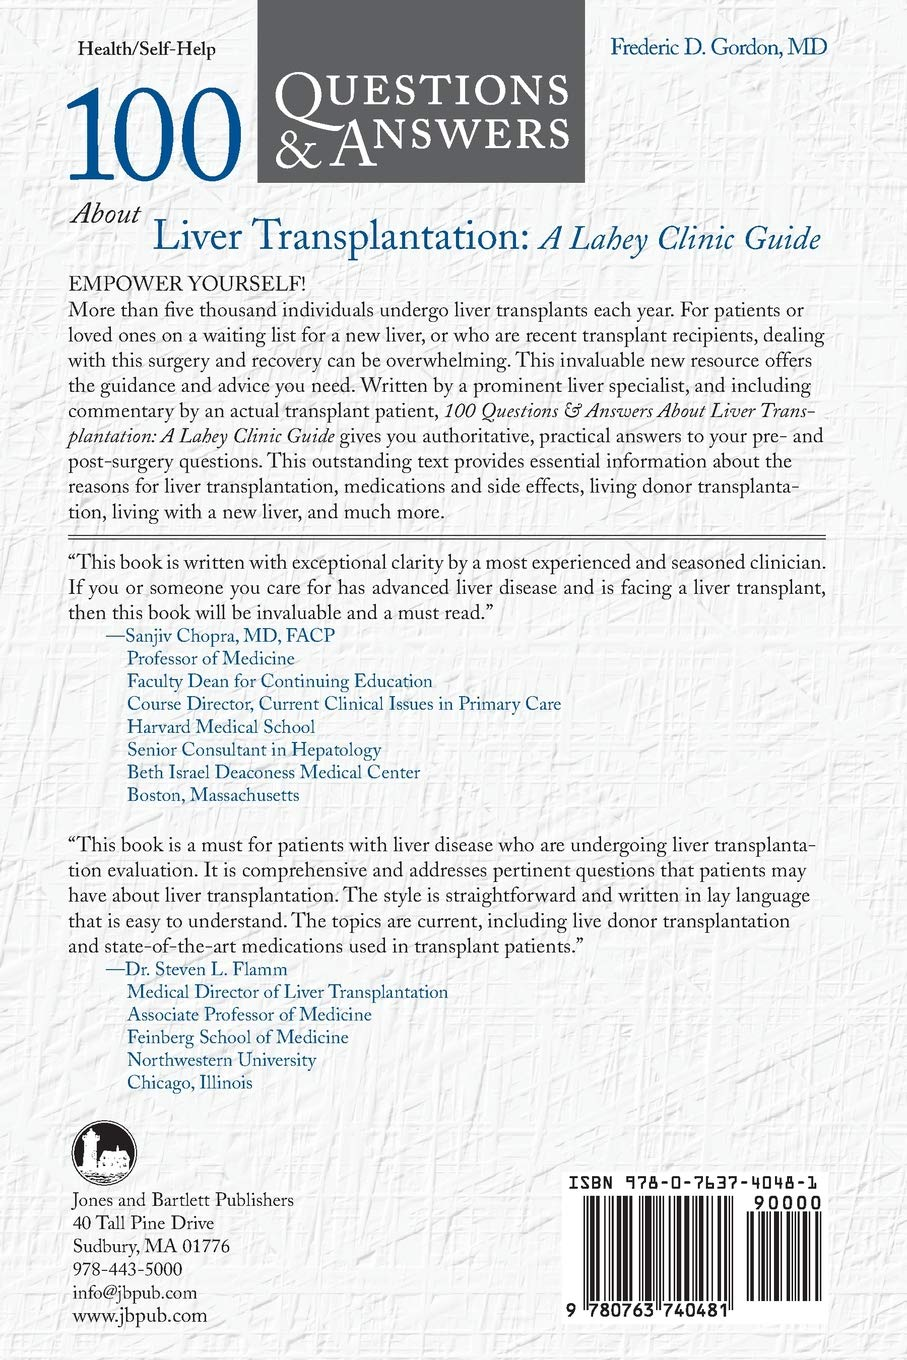 100 Questions & Answers About Liver Transplantation: A Lahey Clinic Guide:  Fredric Gordon: 9780763740481: Books - Amazon.ca